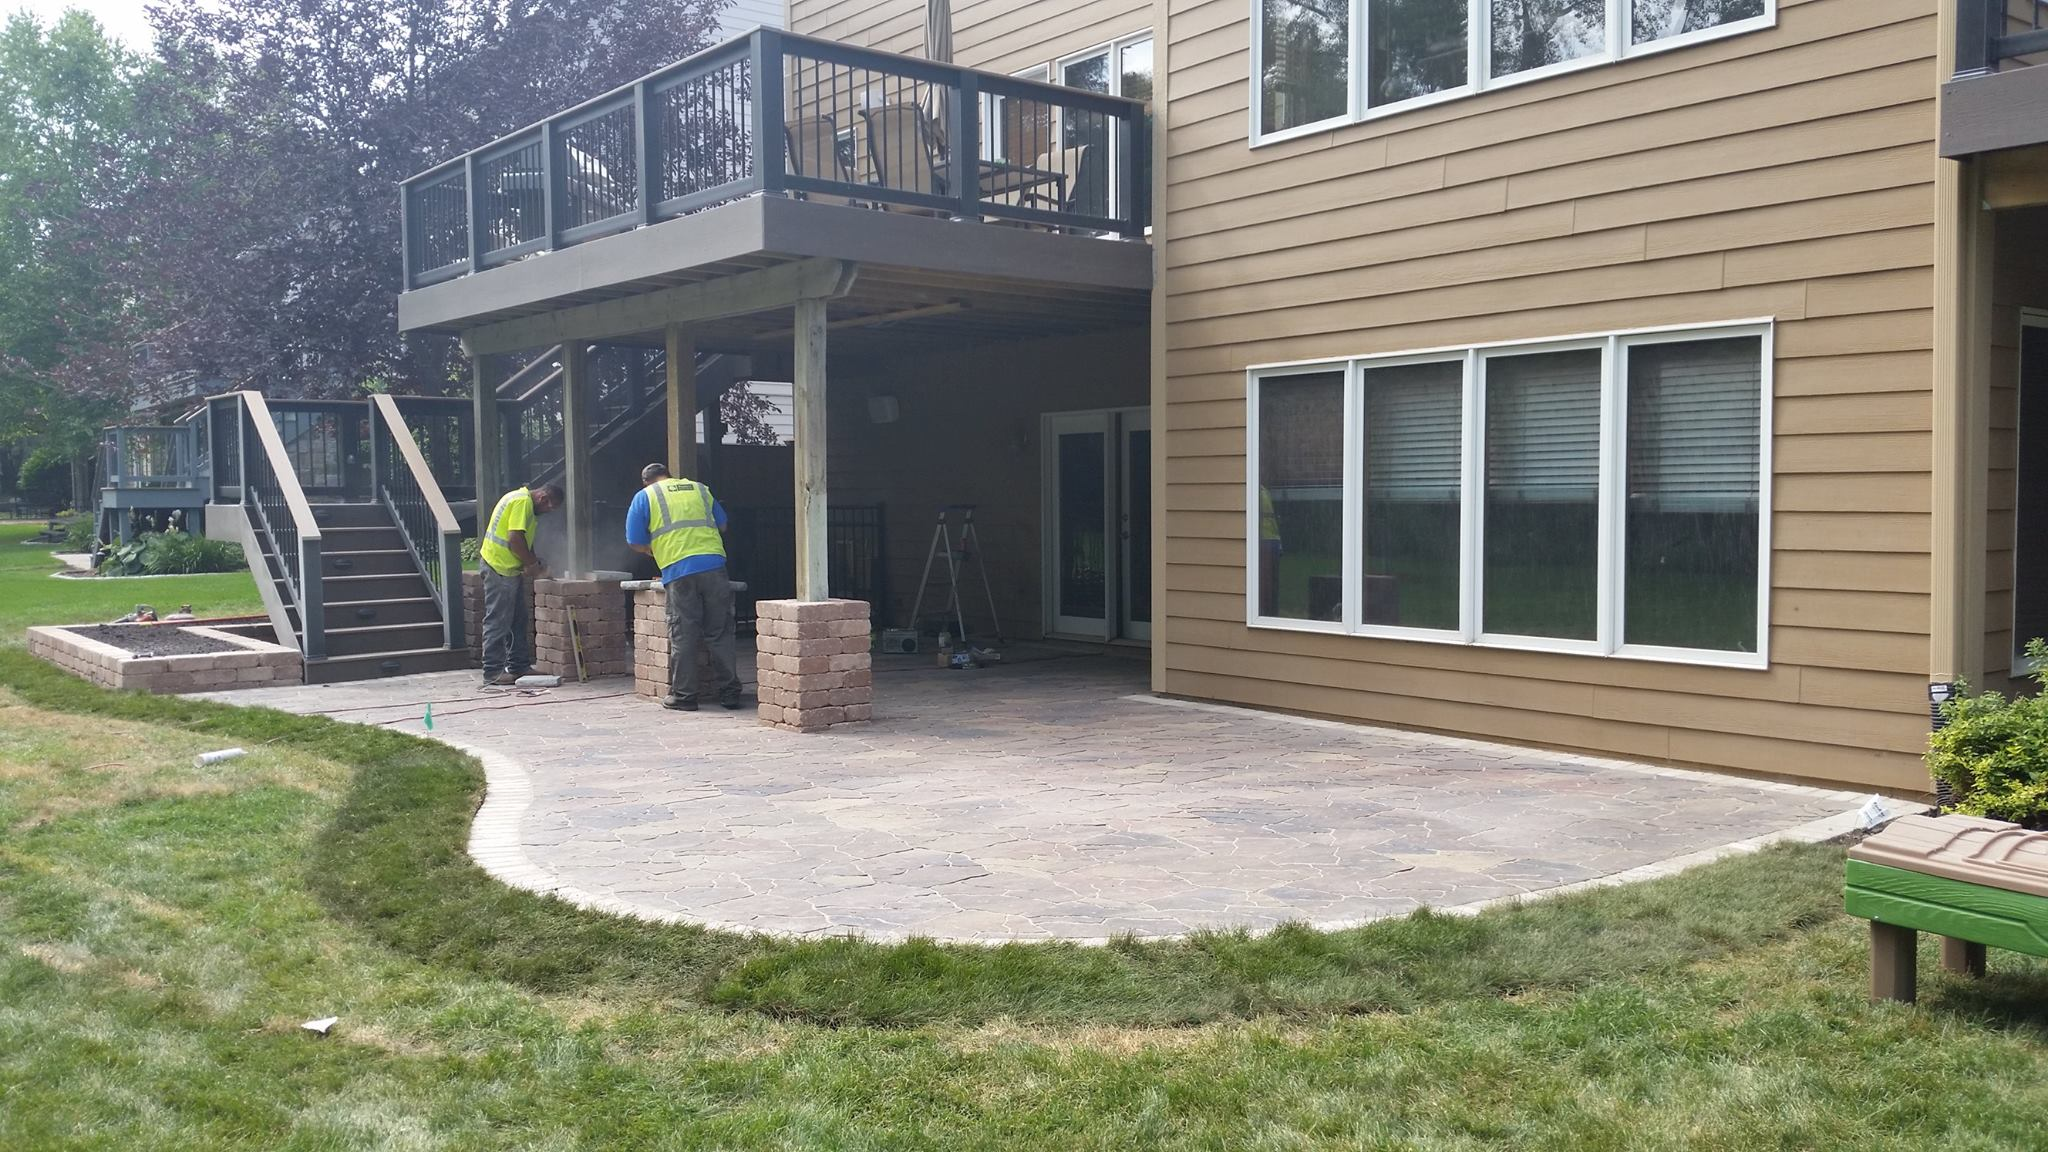 Double Decks, Under Deck System, and New Stone Patio | Des ... on Patio With Deck Ideas id=46507